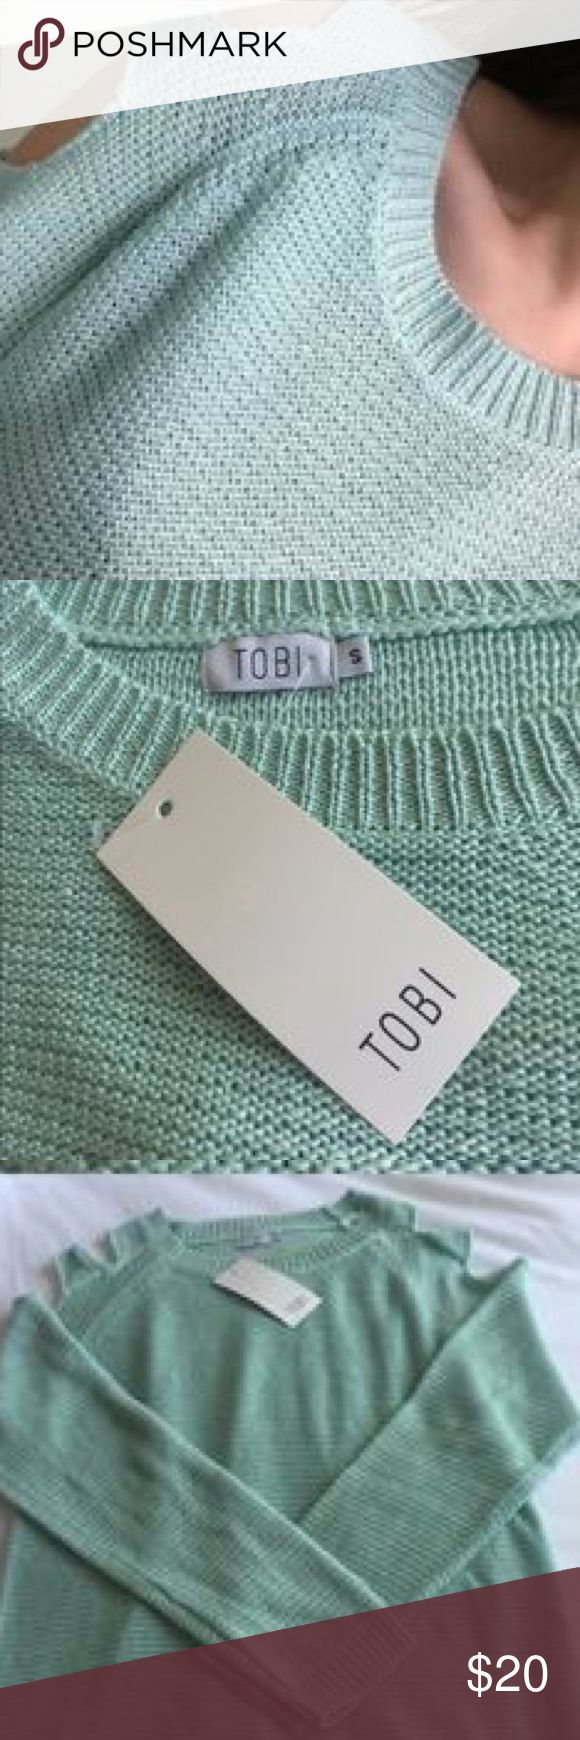 Tobi cold shoulder mint sweater This beautiful mint sweater has only been worn once and is in excellent condition. Features shoulder cut outs that are so cute and let you show some skin! It's a thin sweater so it would be perfect for summer paired with some shorts! *does not come with tag* Tobi Sweaters Crew & Scoop Necks